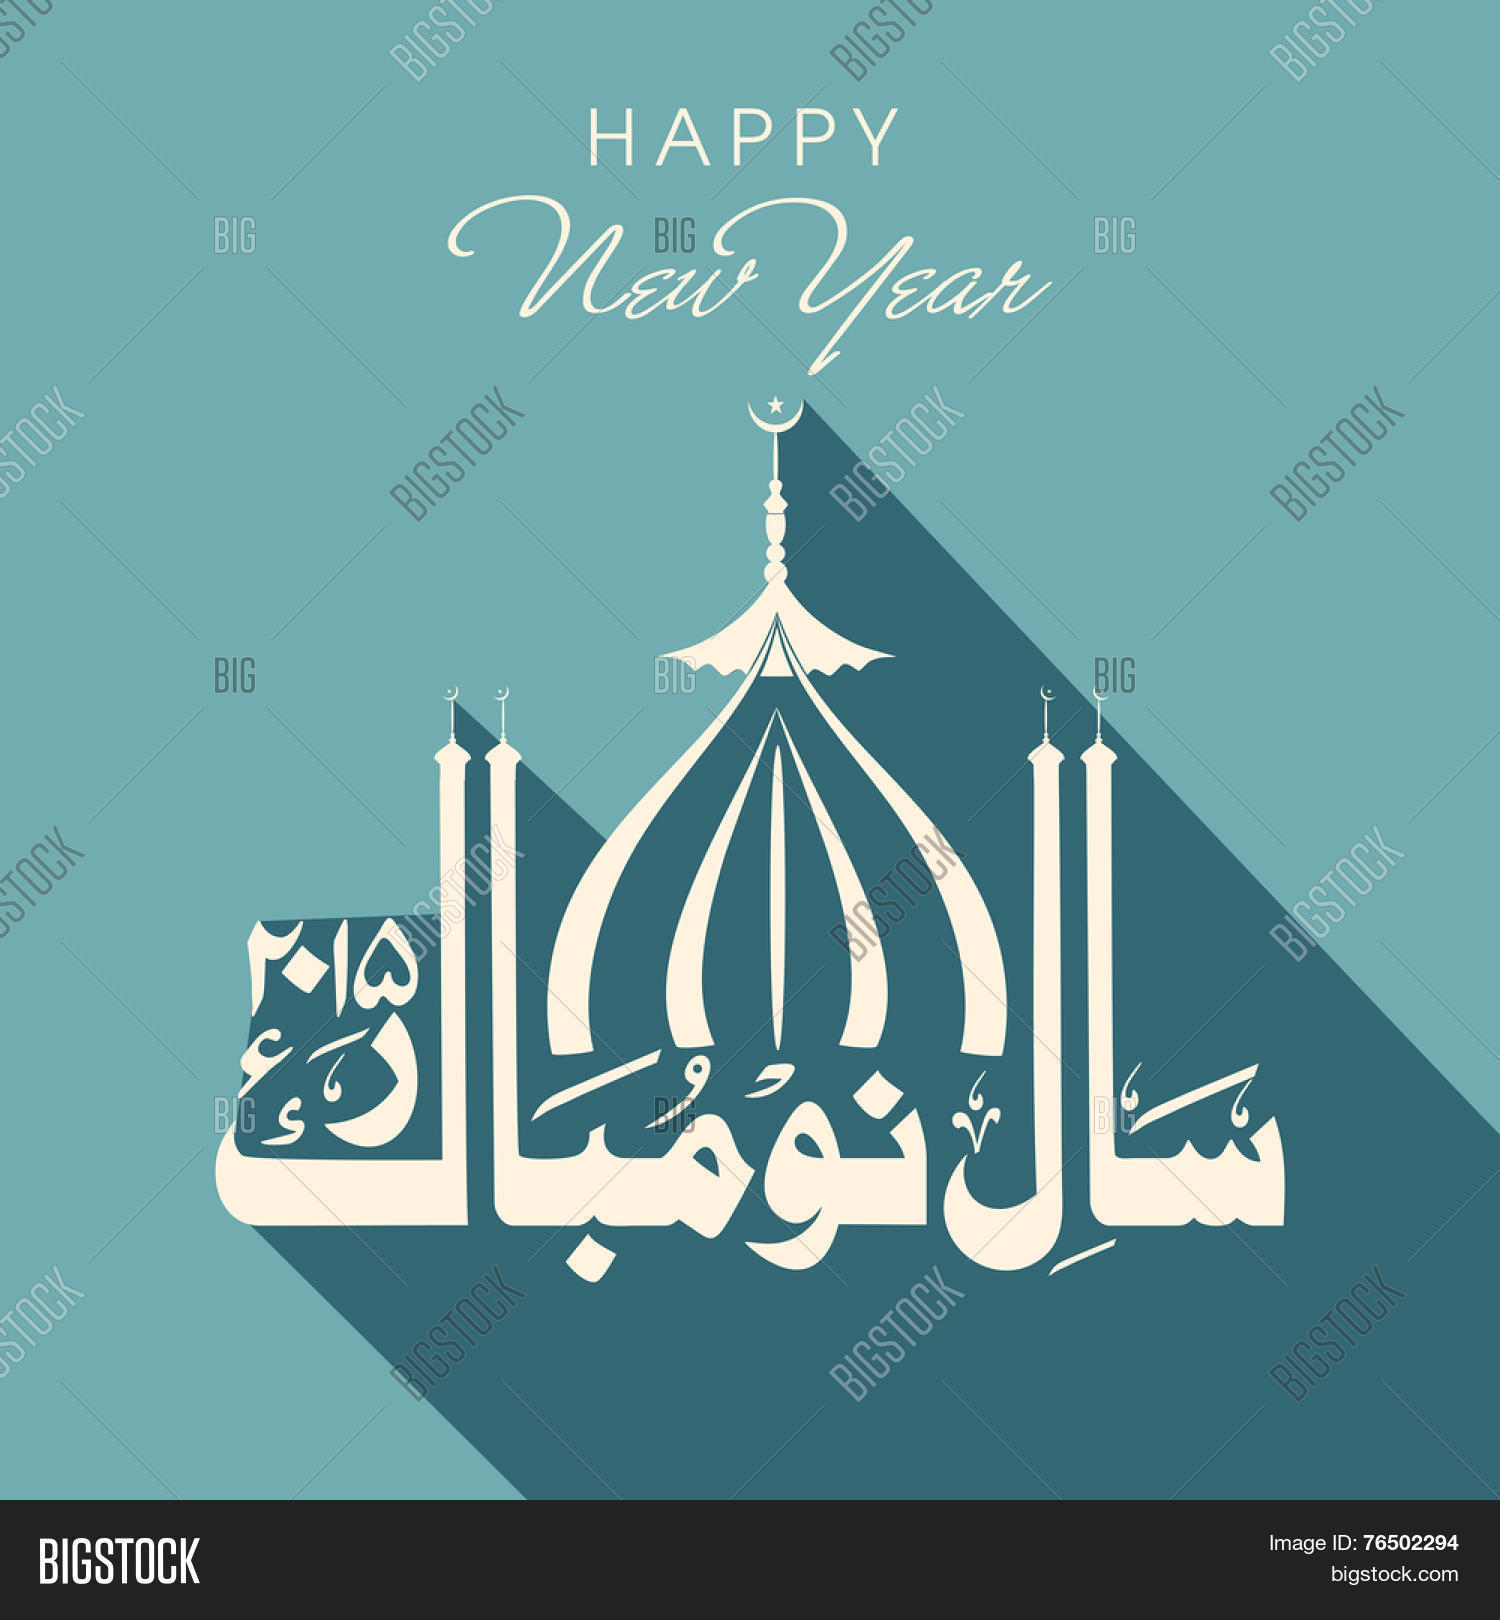 arabic islamic calligraphy of text naya saal mubarak ho happy new year with islamic